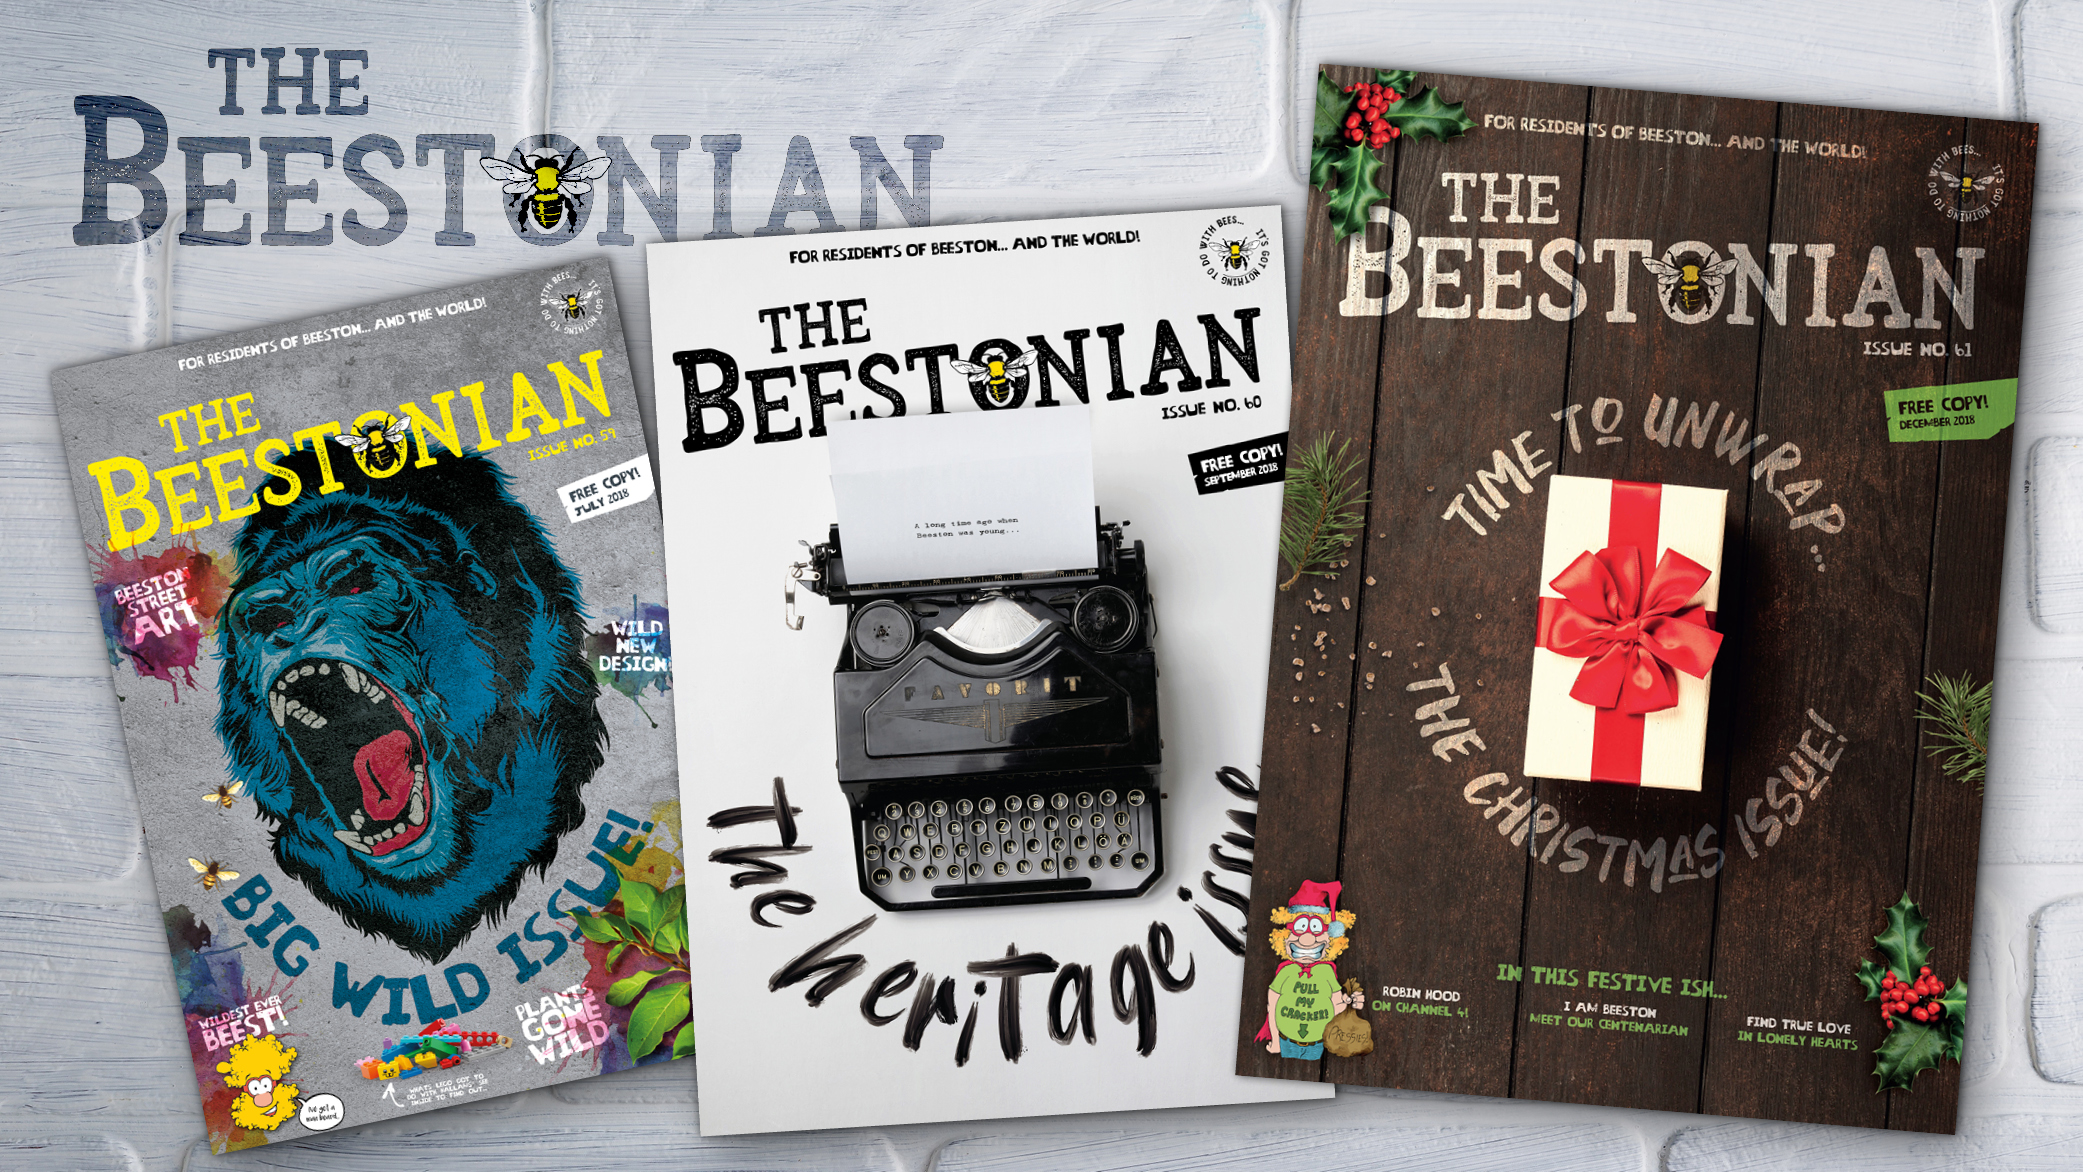 The Beestonian – a true community magazine